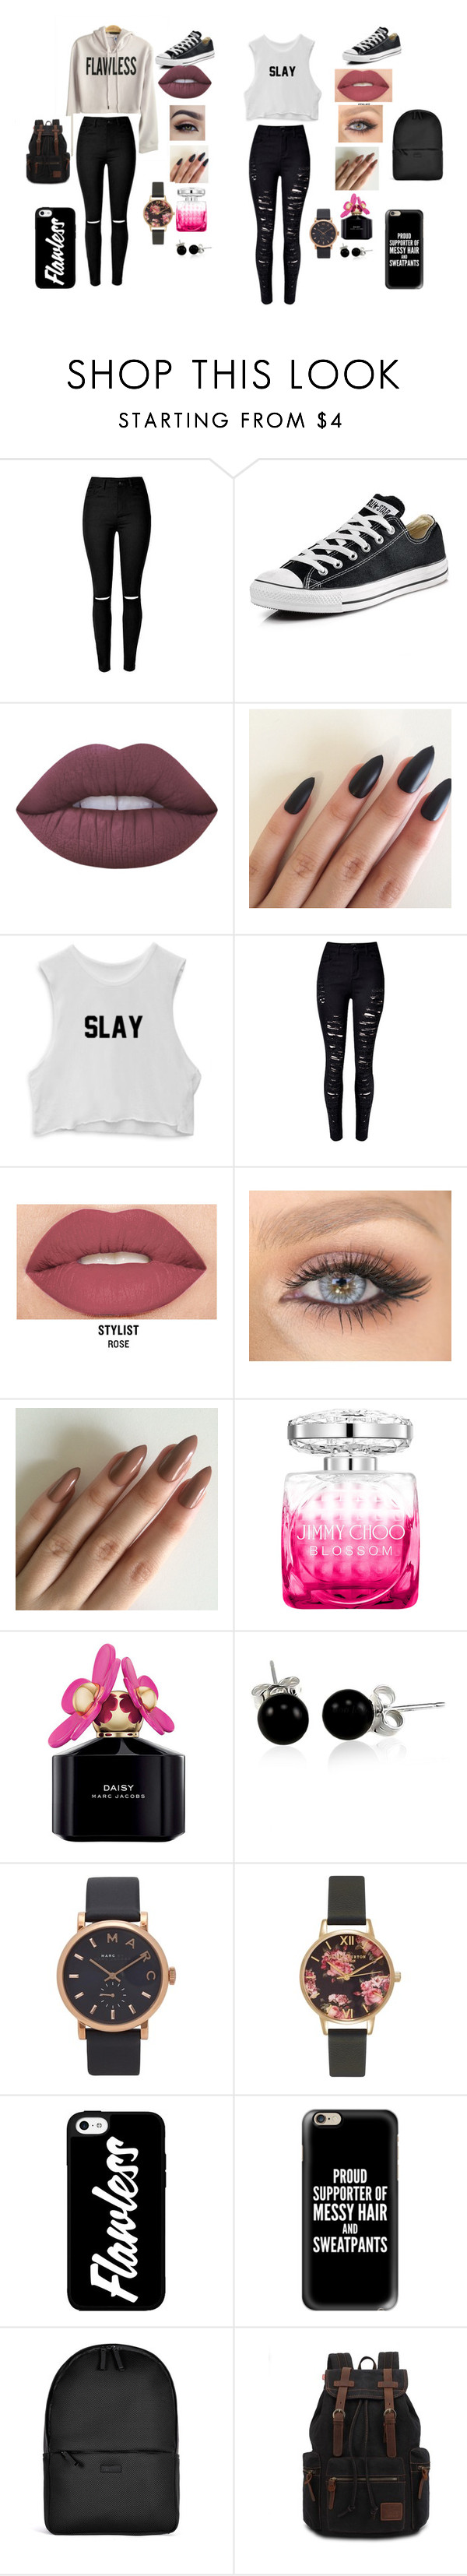 """""""bestfriend goals"""" by aniapenguin on Polyvore featuring Converse, Lime Crime, WithChic, Smashbox, Jimmy Choo, Marc Jacobs, Bling Jewelry, Olivia Burton, Casetify and Rains"""